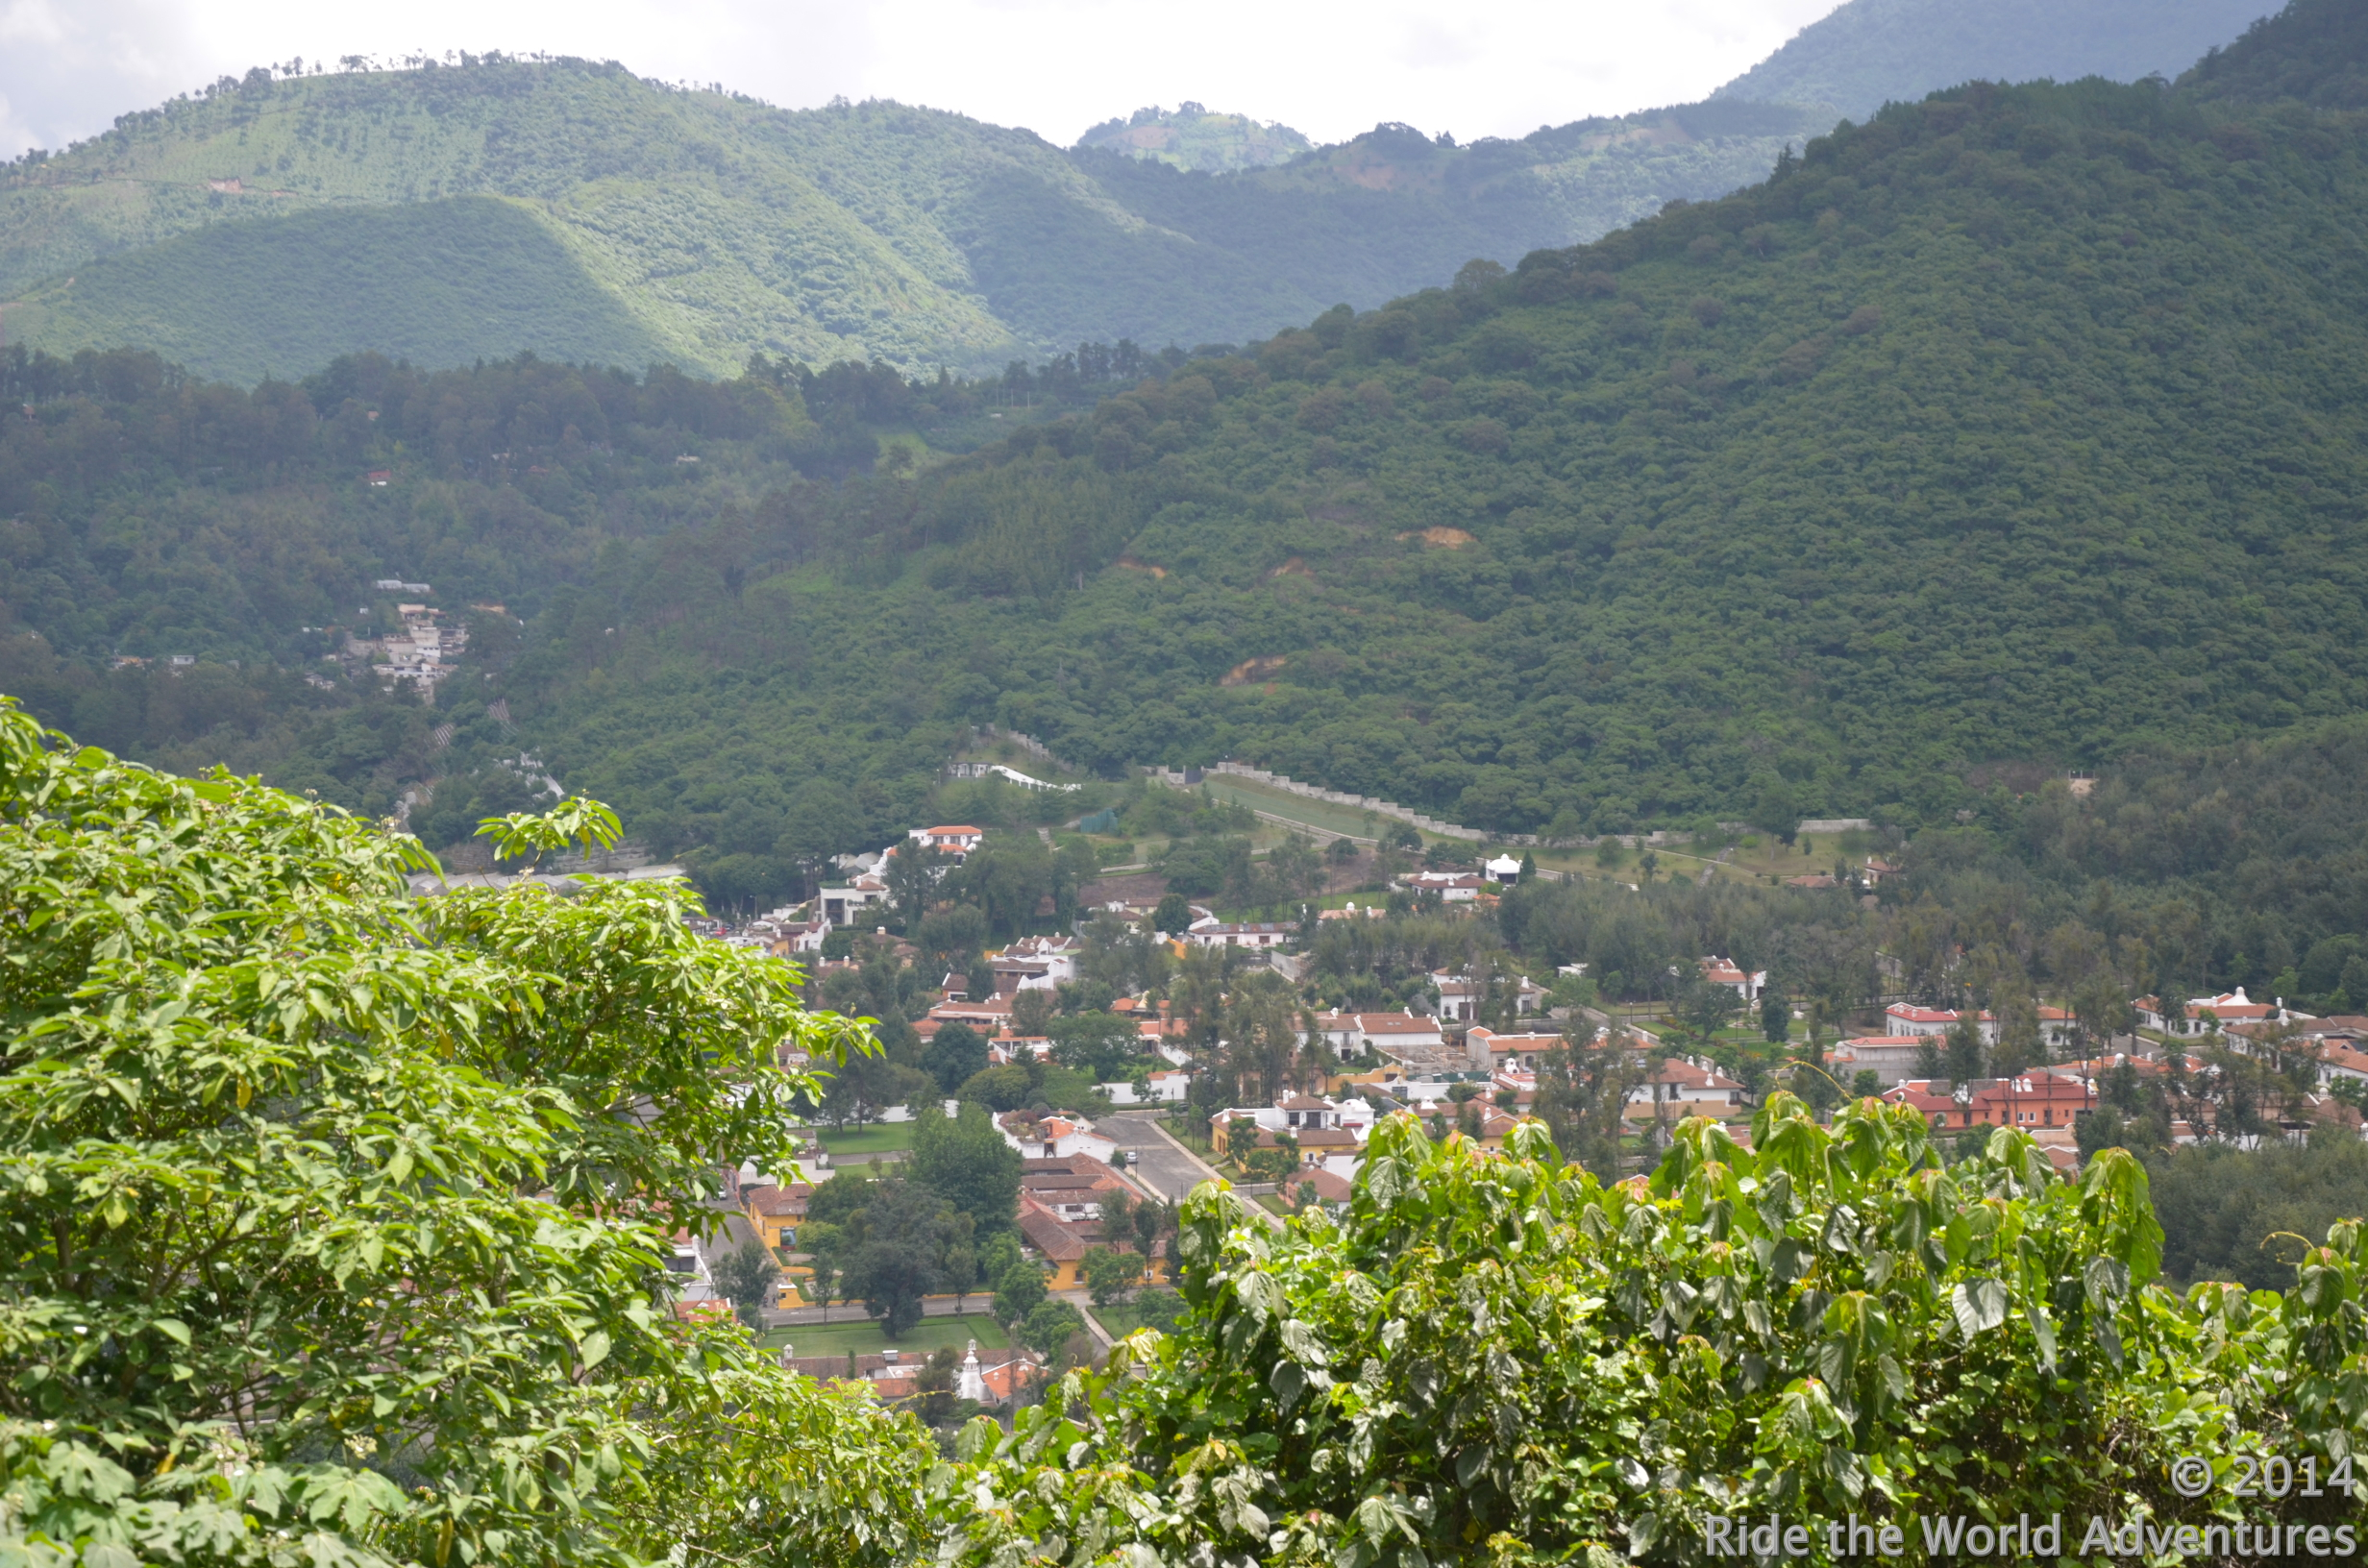 One quick partial view into the valley of Antigua Guatemala.